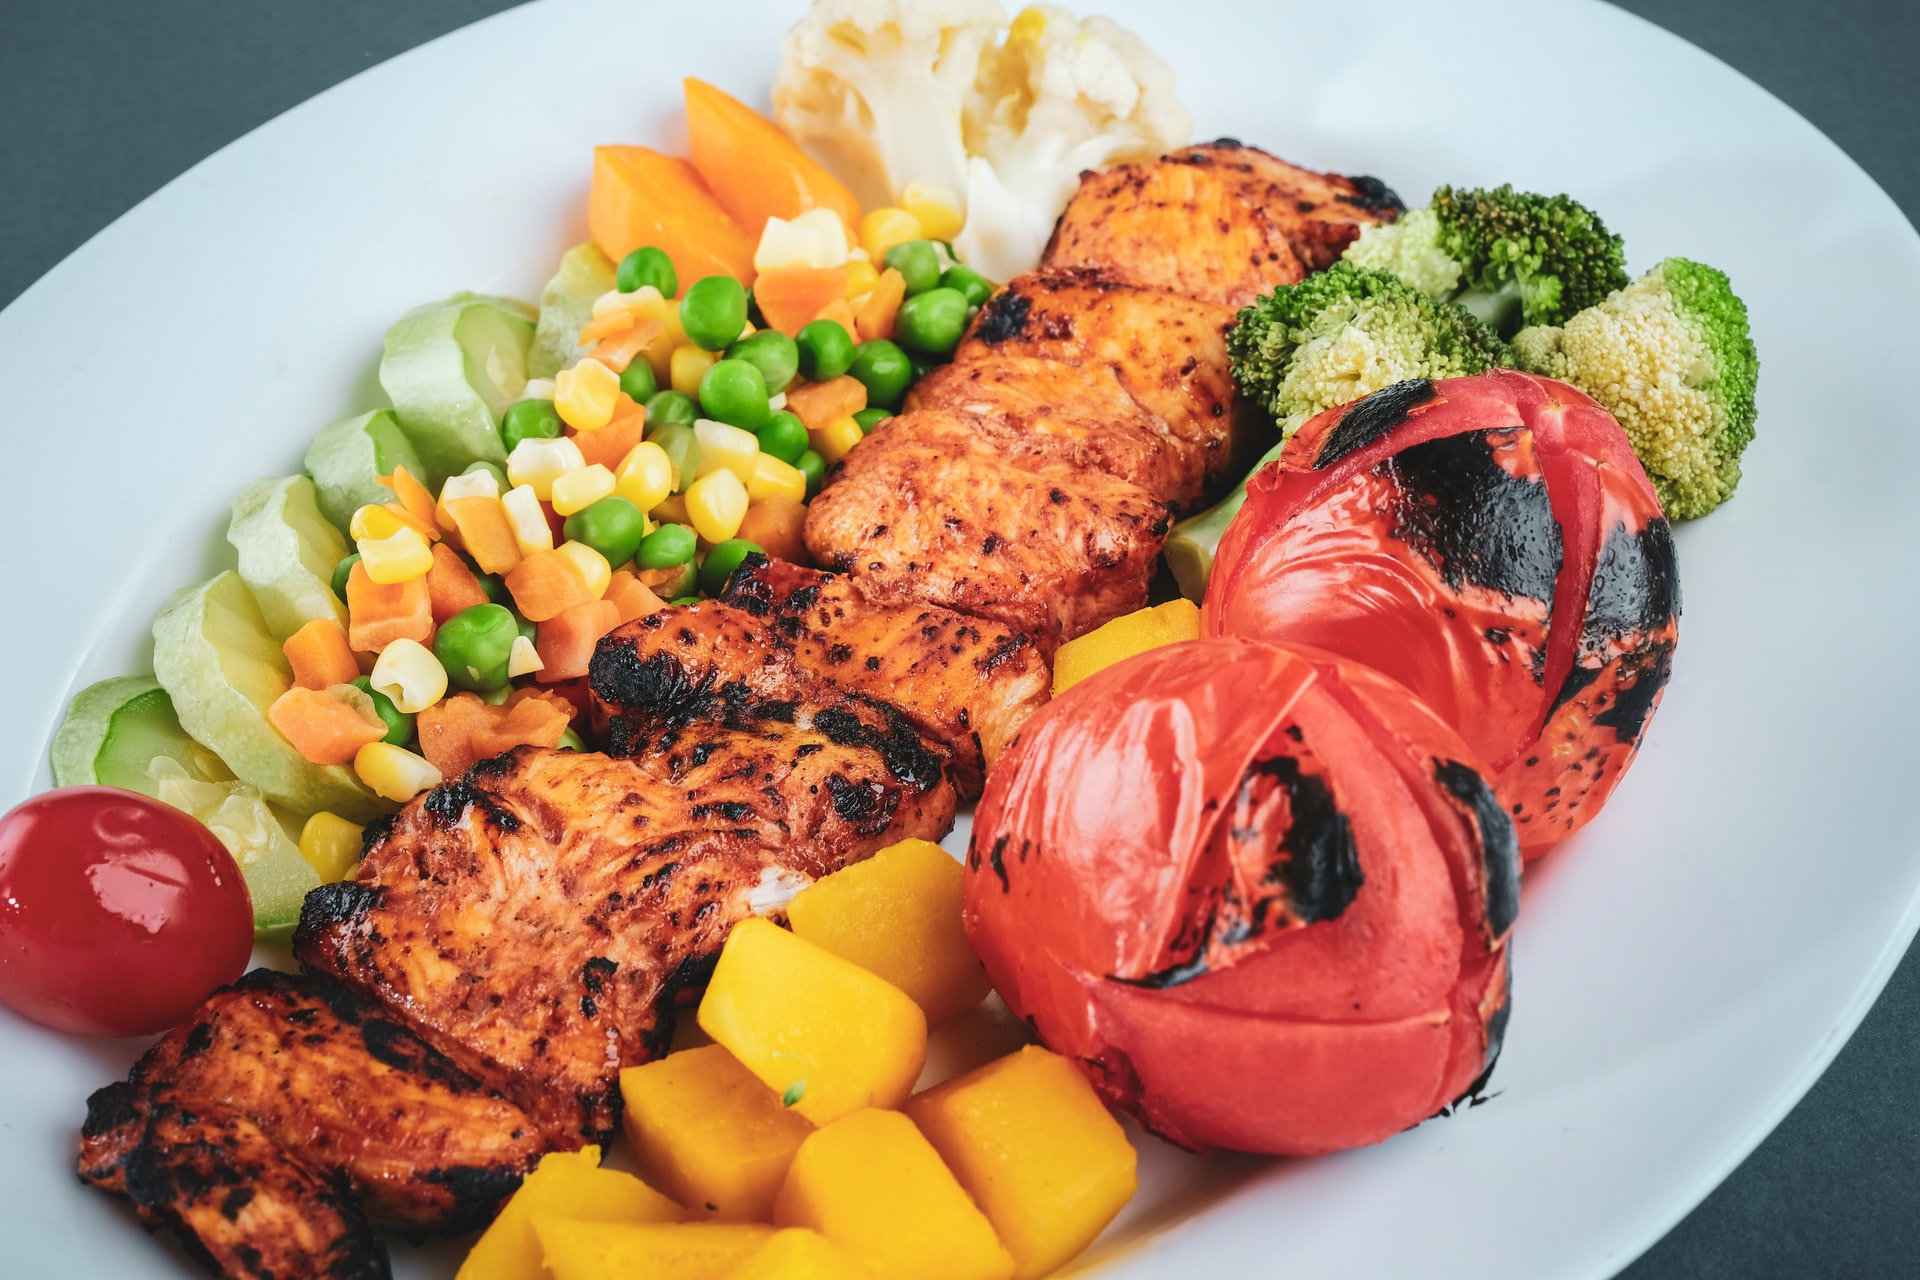 Oily Fish and Salad meal for Diet and Nutrition